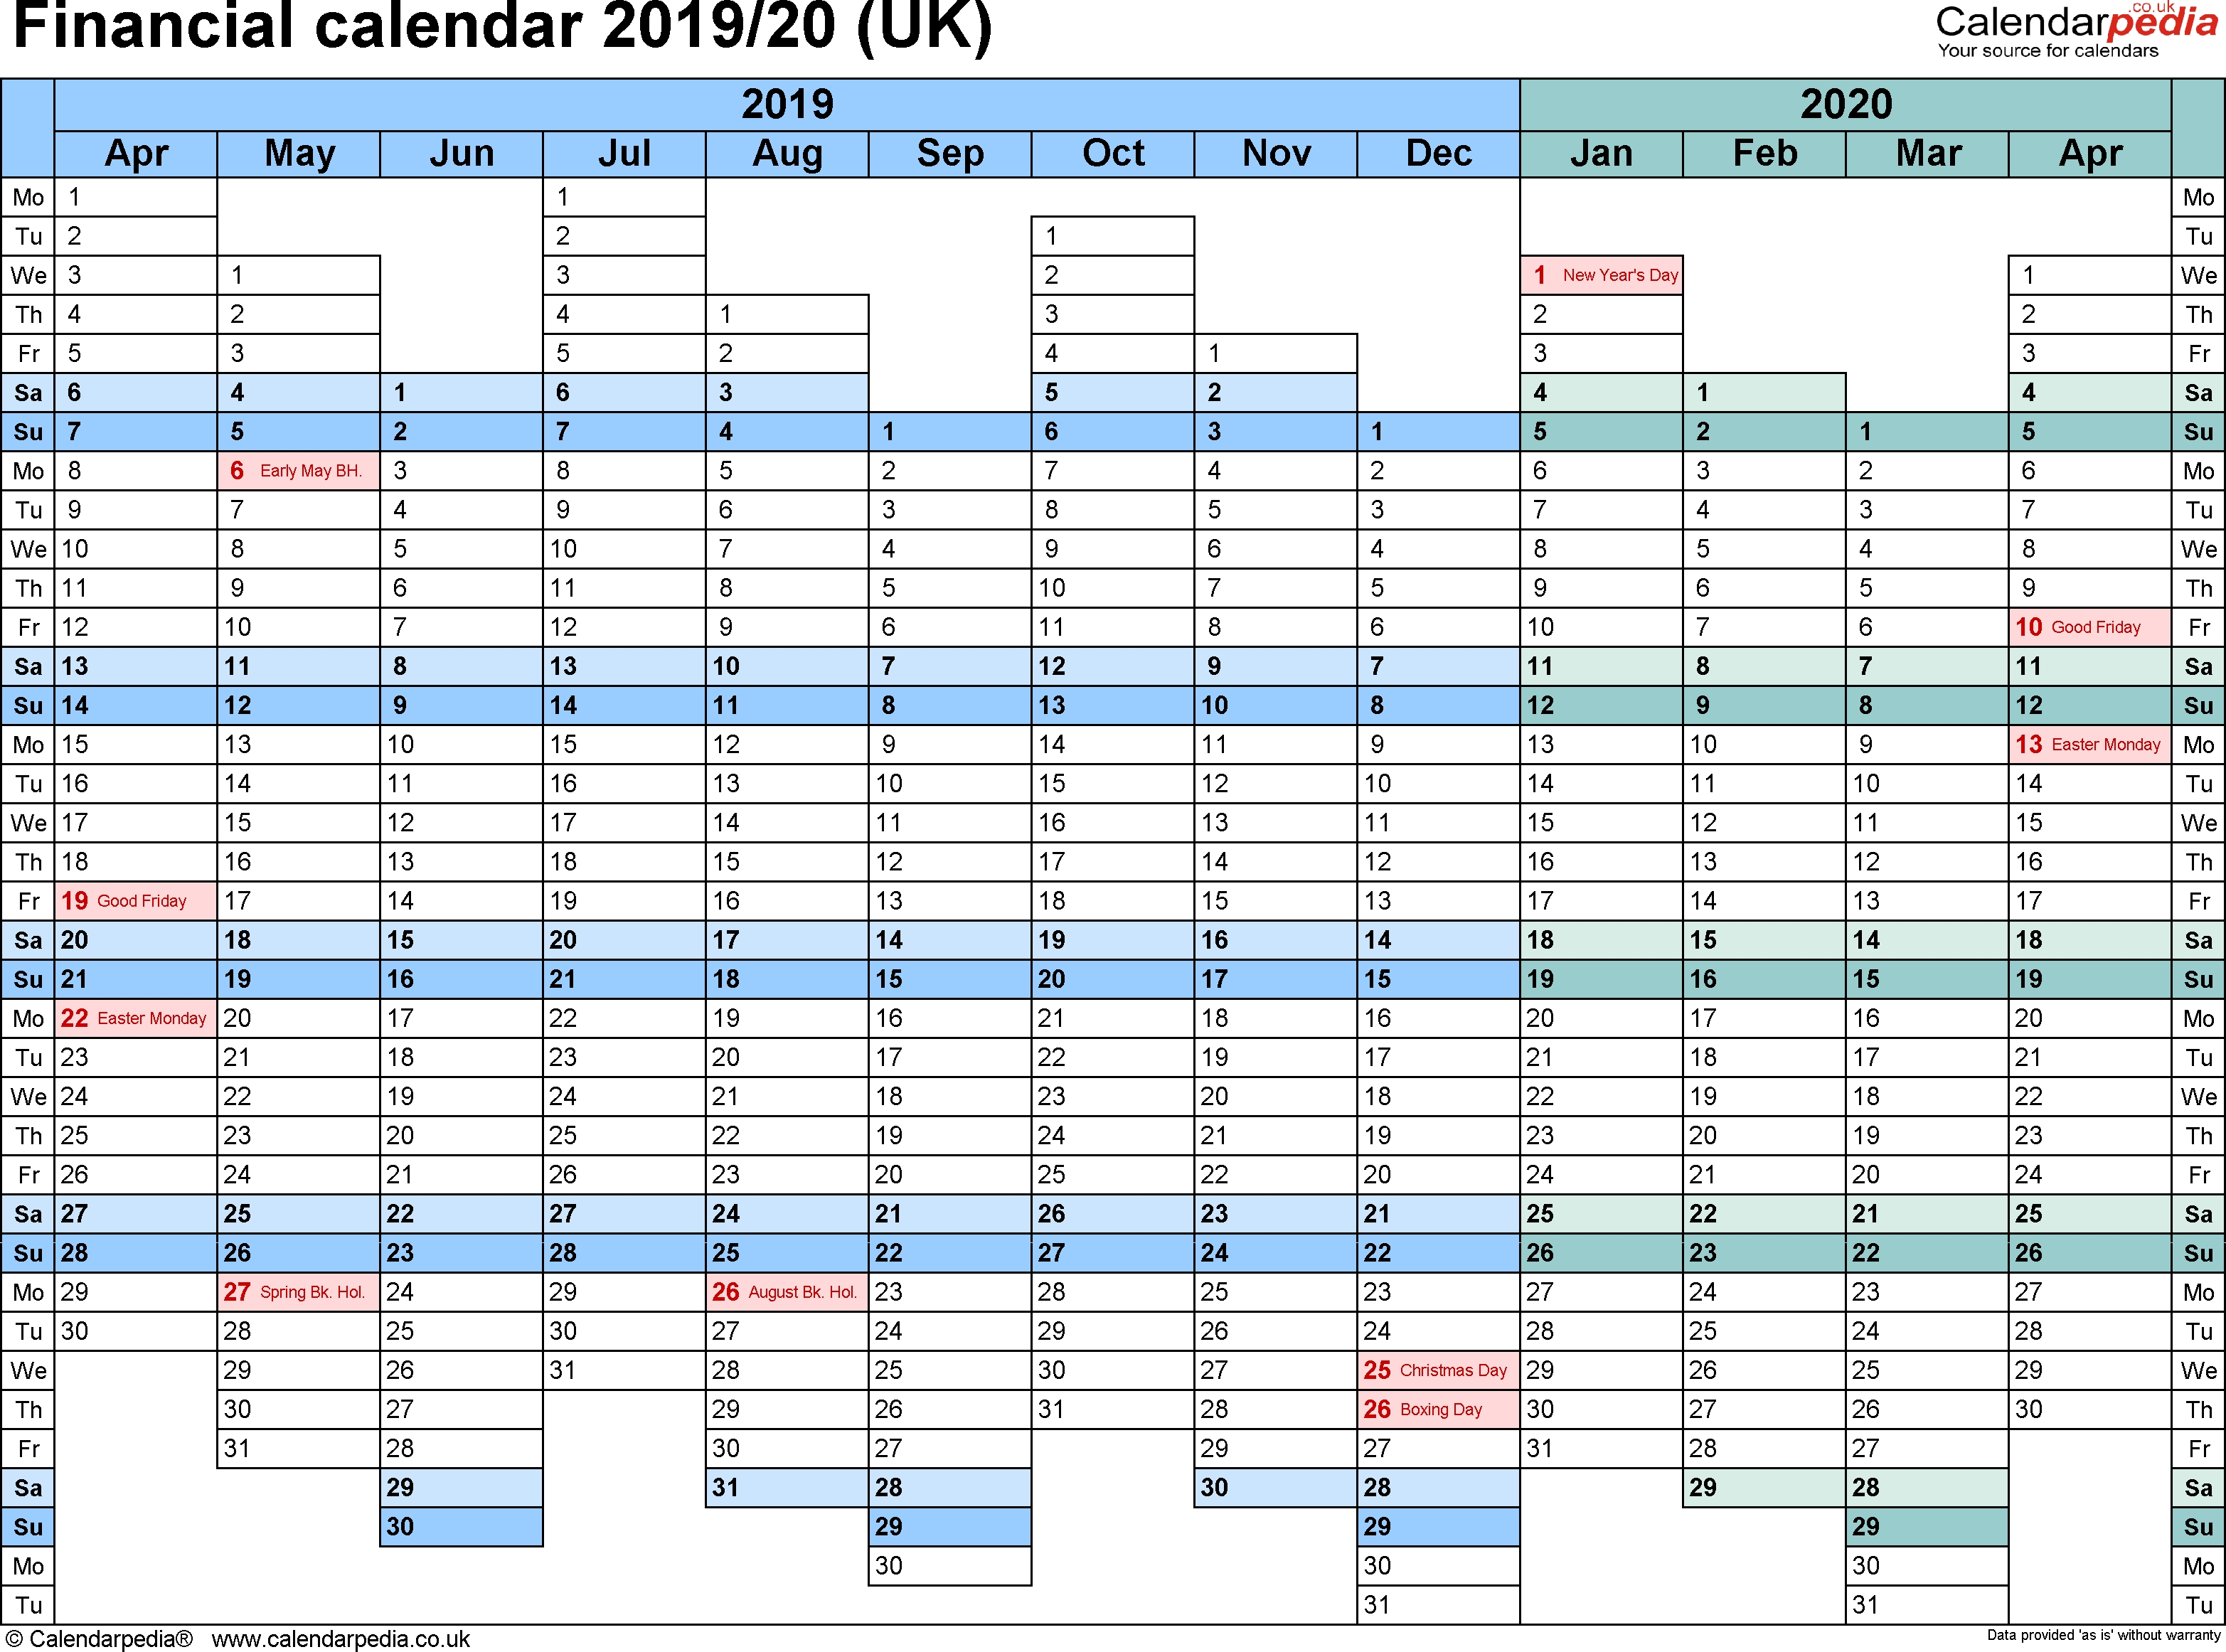 Financial Calendars 2019/20 (Uk) In Pdf Format throughout Hmrc Tax Weekly Calander 2019-2020